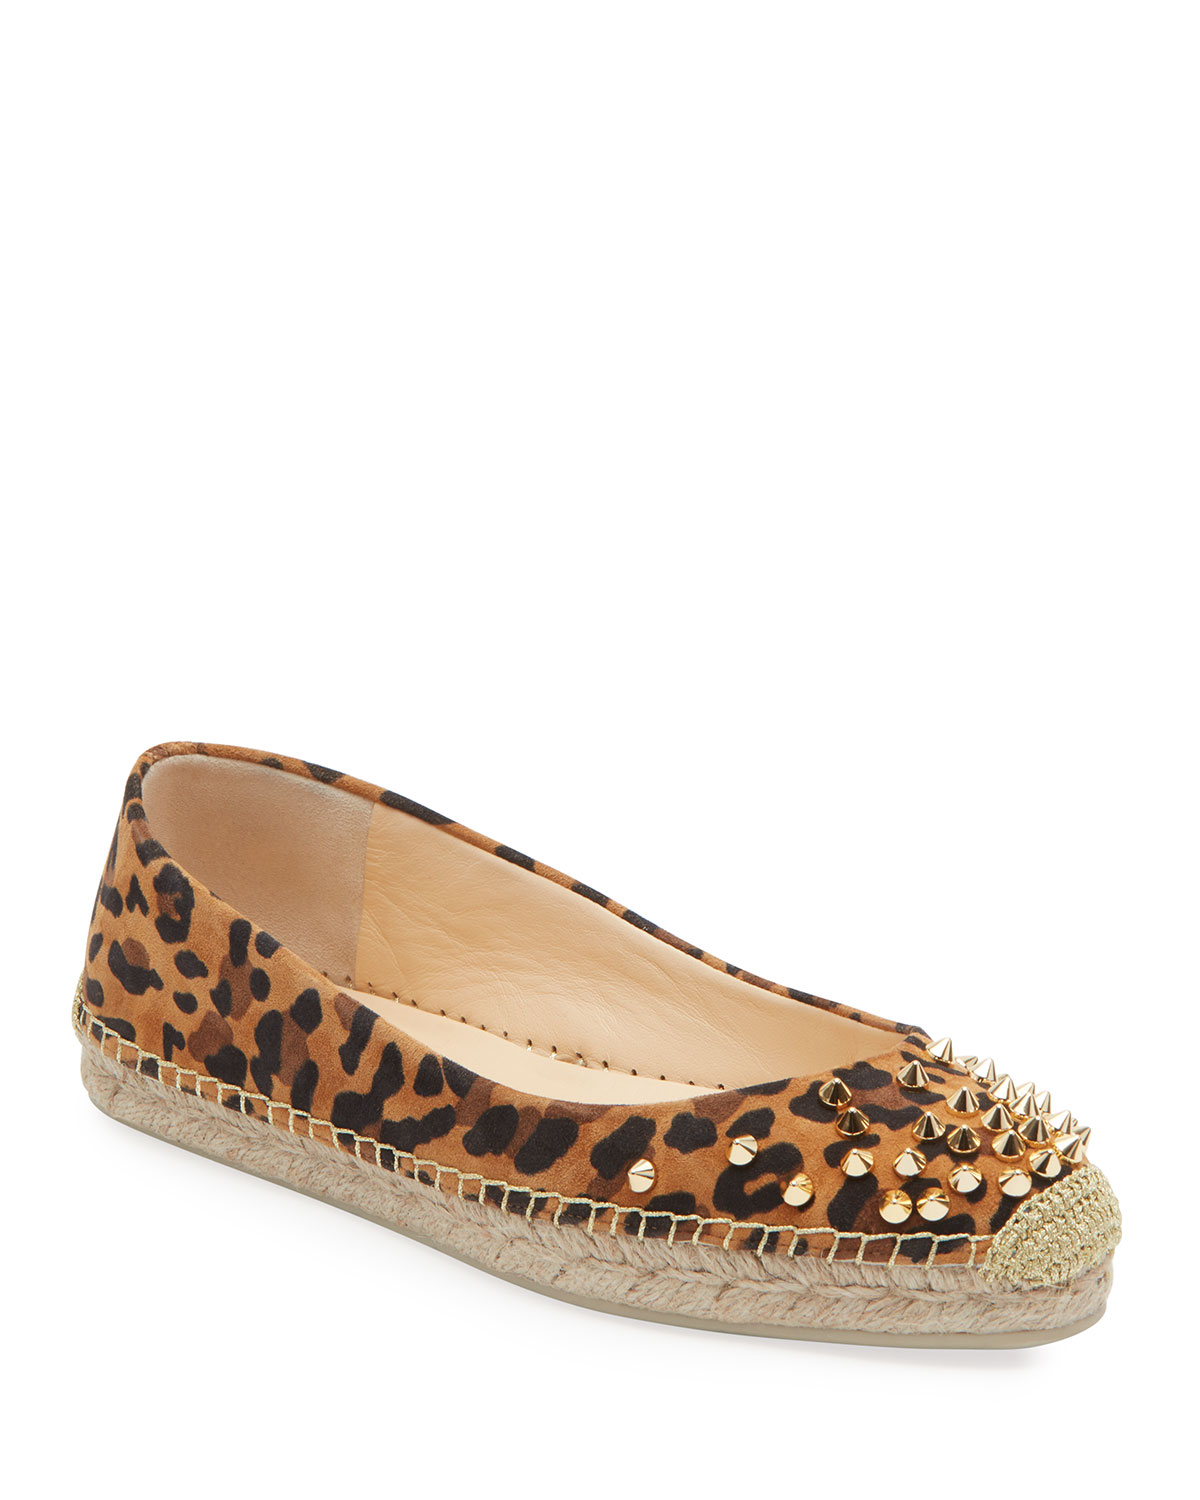 best loved 88fa8 1f3b4 Aliochette Flat Leopard Red Sole Espadrilles